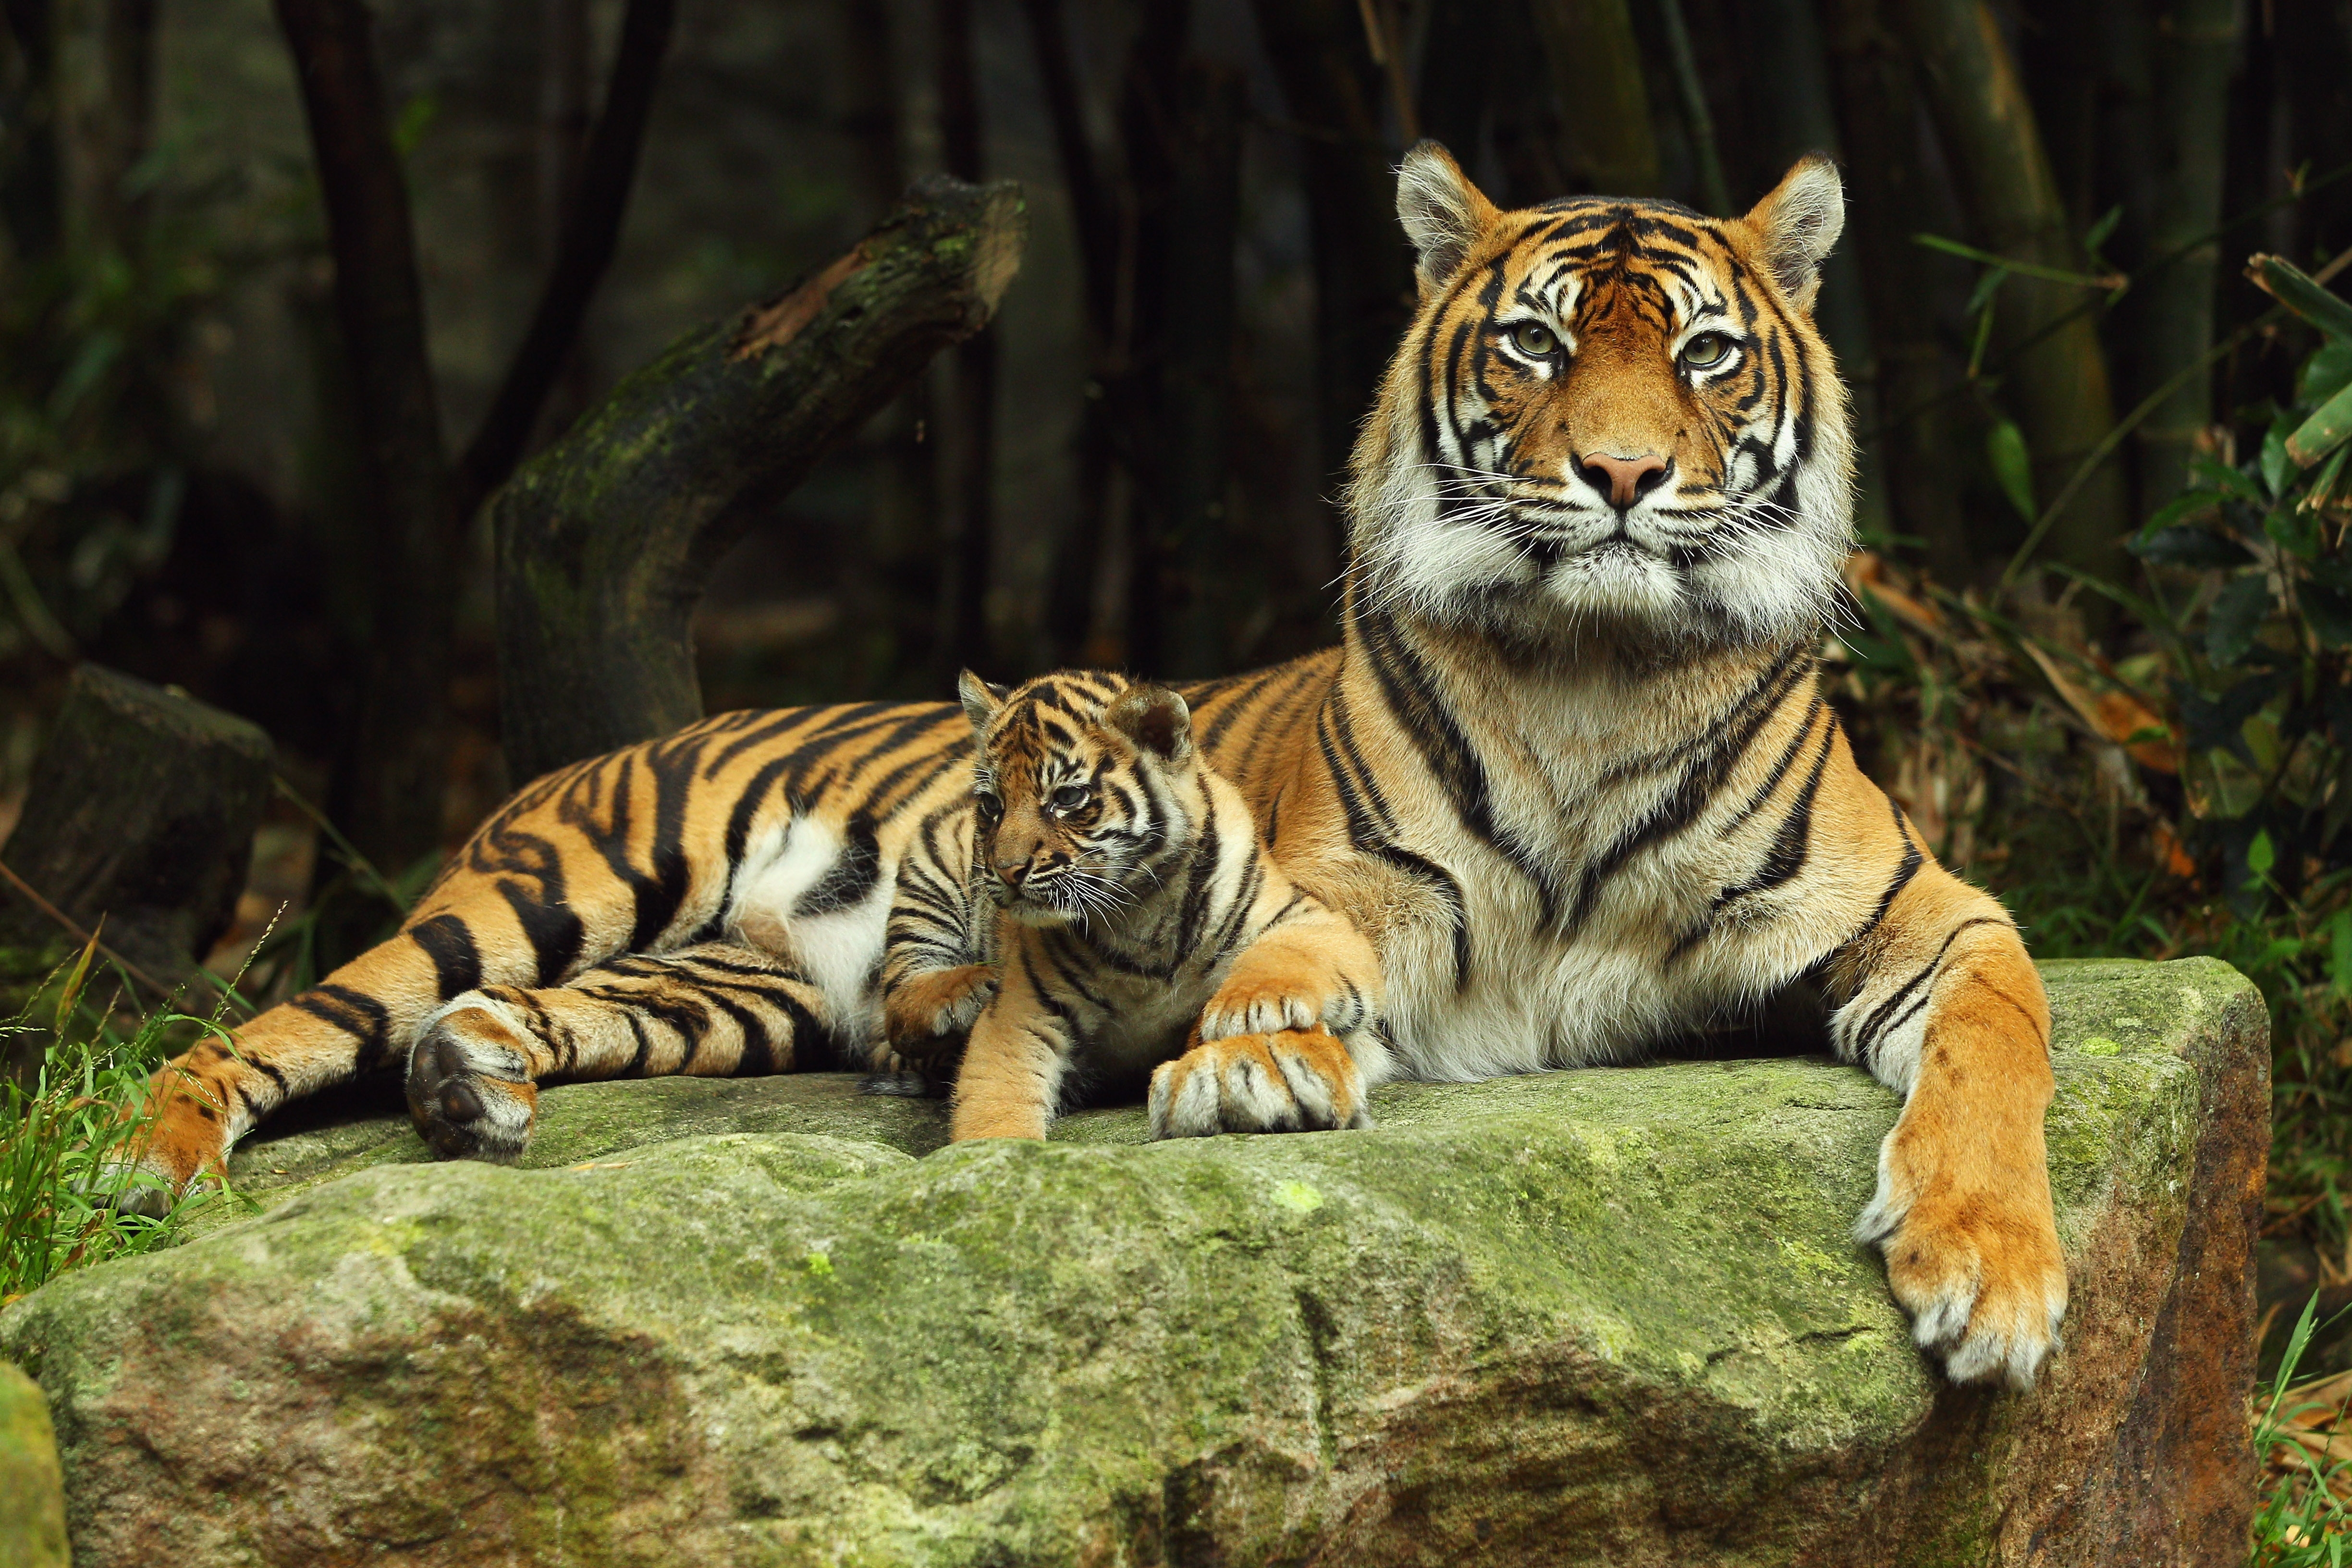 69868 download wallpaper Animals, Tiger, Tiger Cub, To Lie Down, Lie, Couple, Pair, Care screensavers and pictures for free